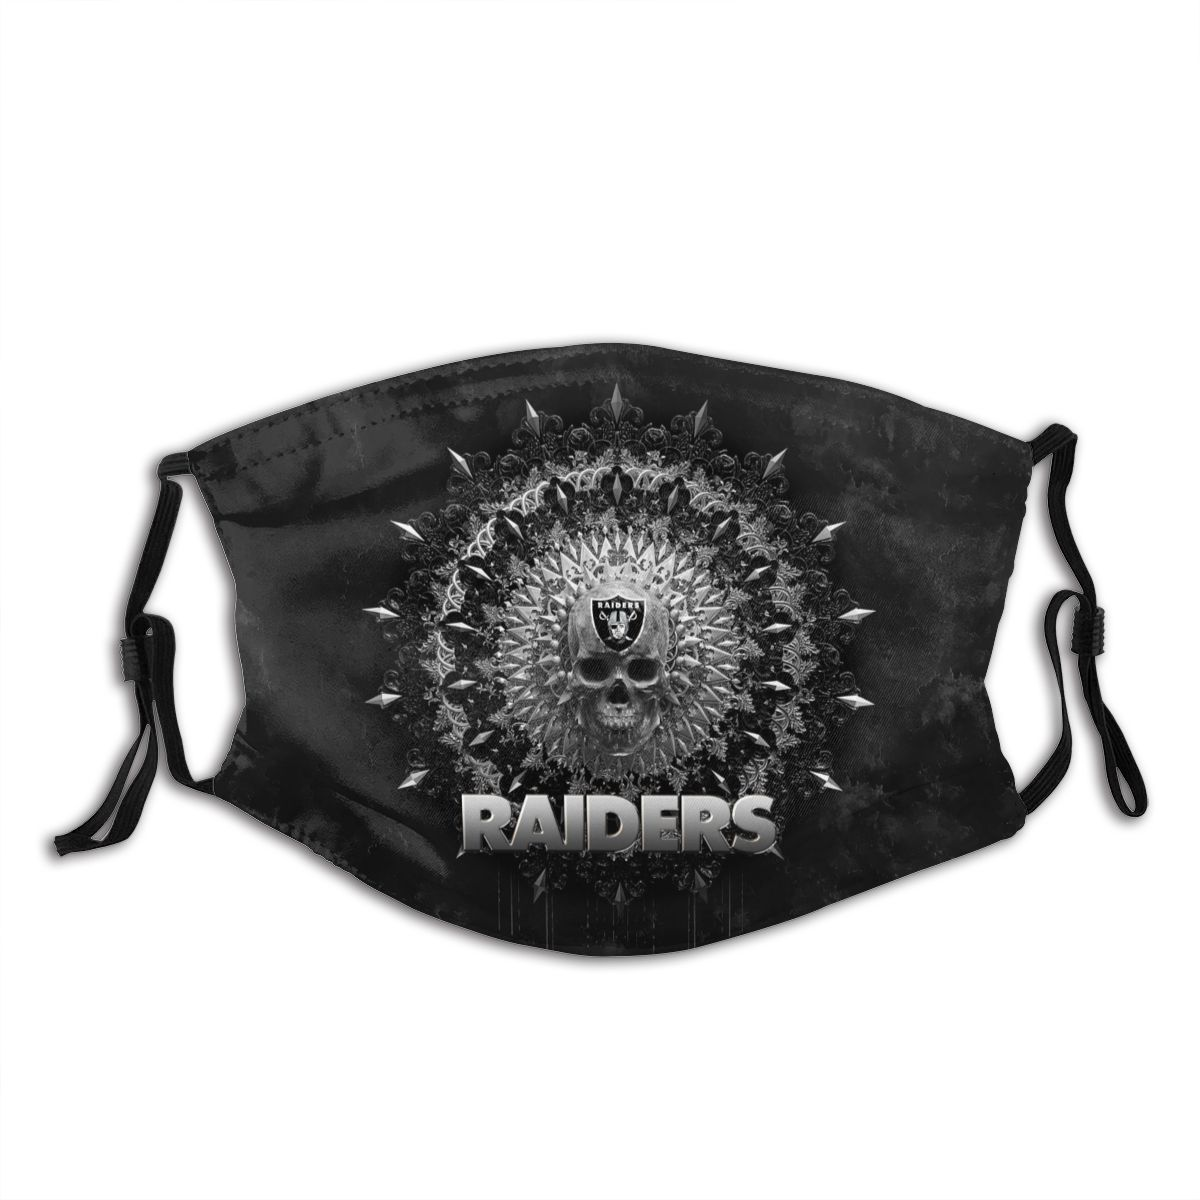 Raiders Adult Cloth Face Covering With Filter